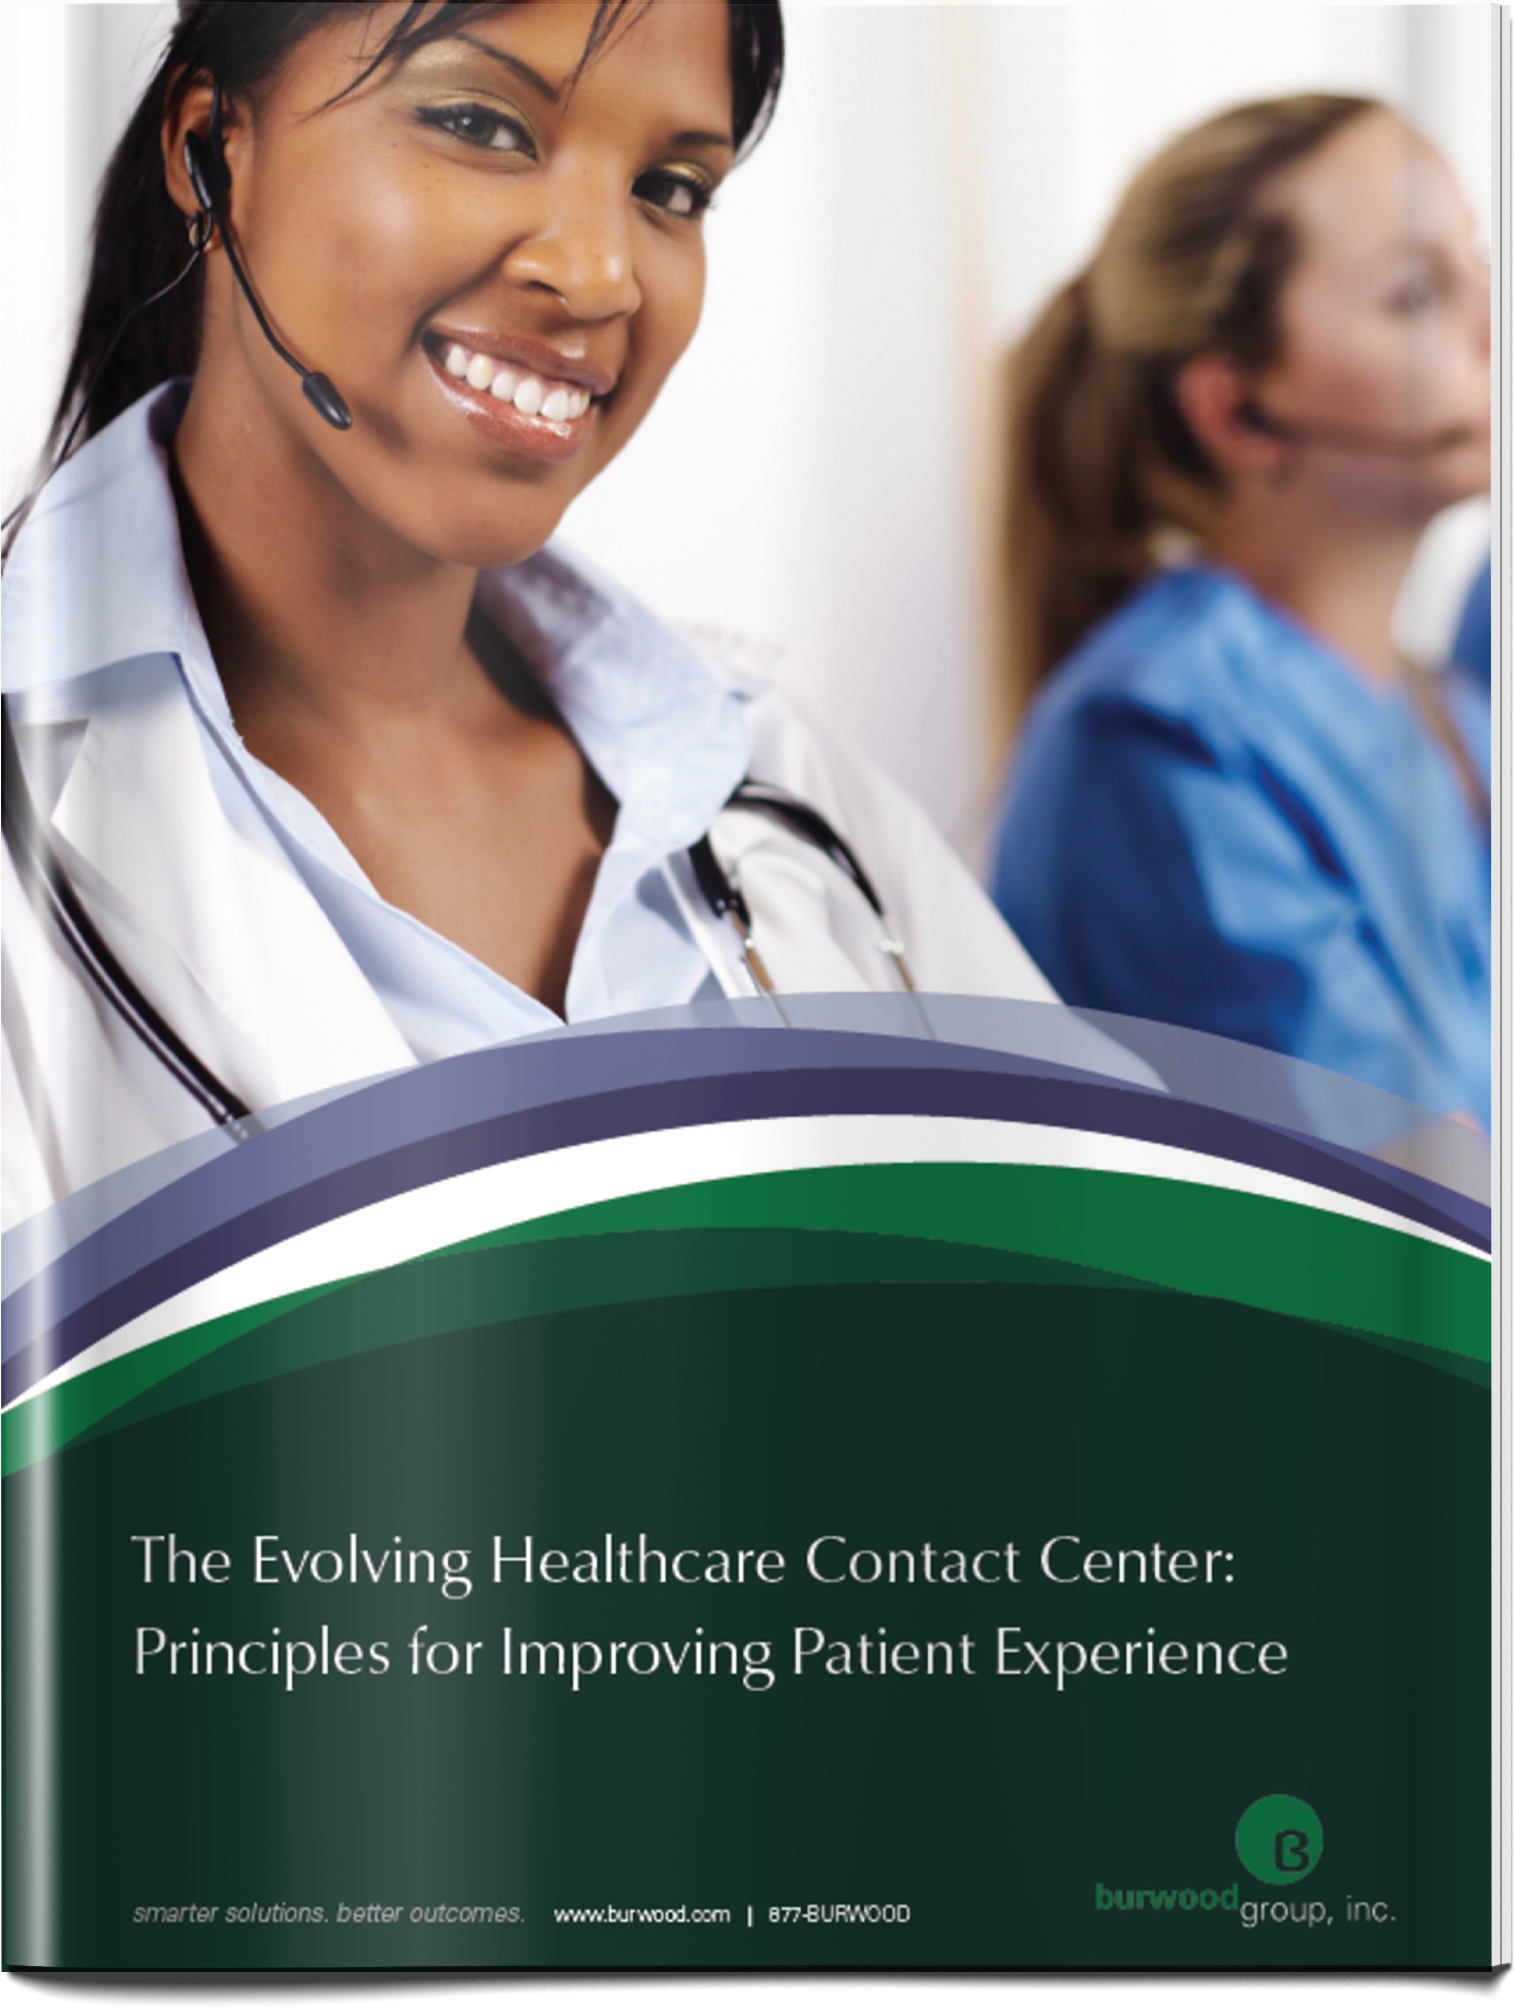 The Evolving Healthcare Contact Center: Principles for Improving Patient Experience - Successful health systems will learn to better leverage their contact centers as a way to attract and retain patients, and to tackle a complex set of new challenges.Read The Whitepaper